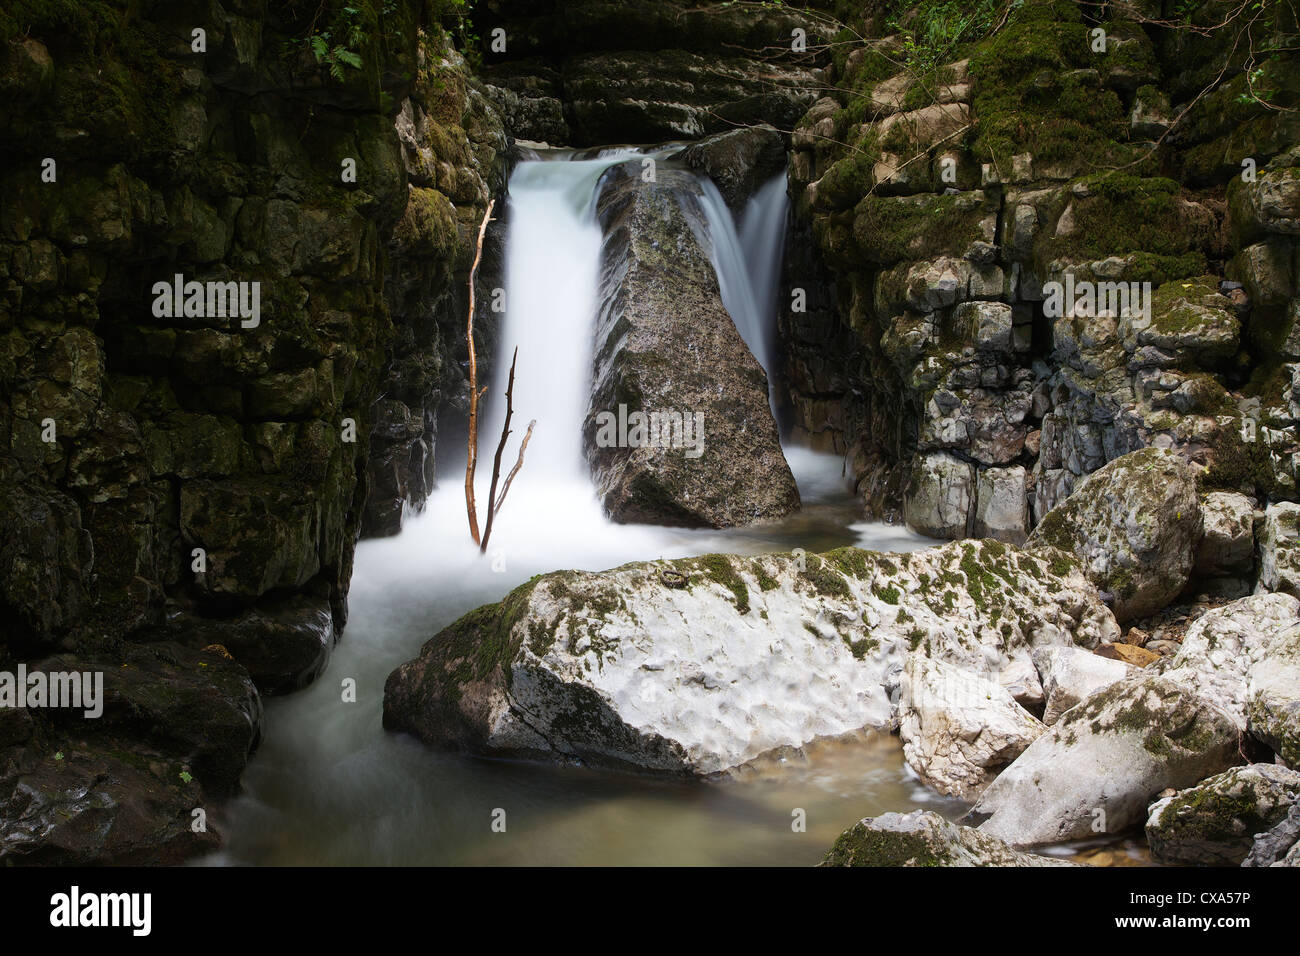 Waterfall in limestone gully at The Howk, Caldbeck, Lake District, Cumbria, England, UK - Stock Image